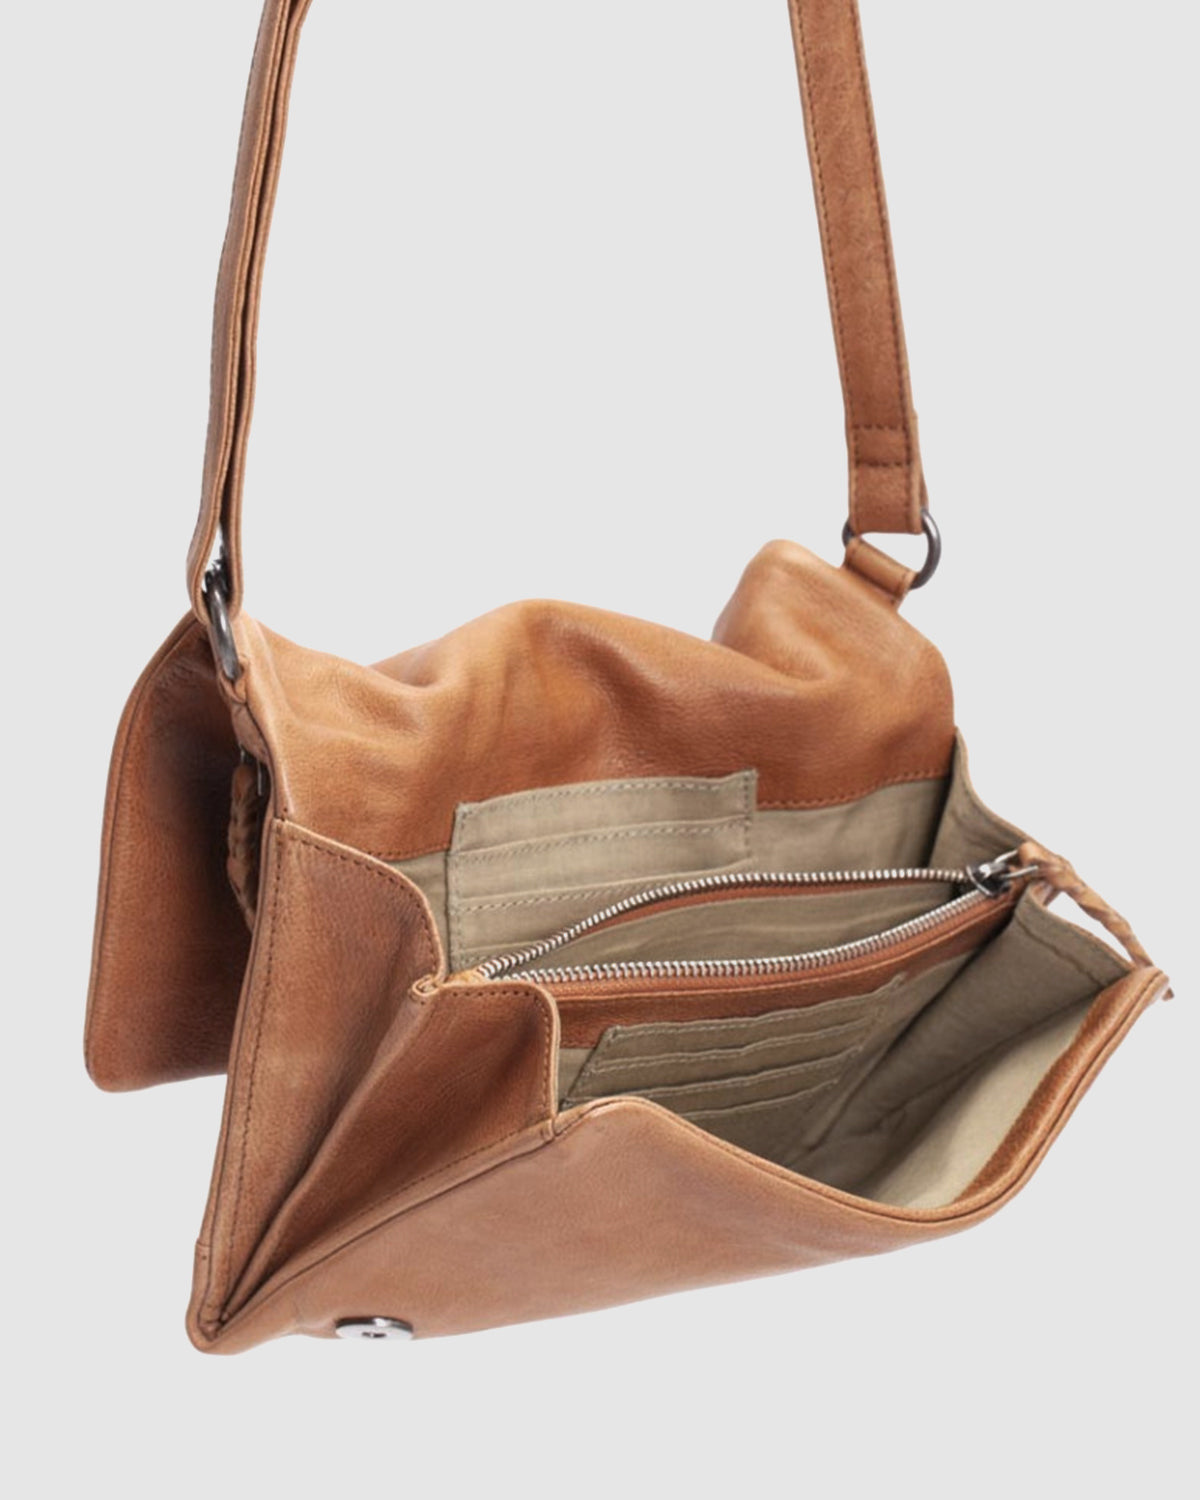 BIBA NASHVILLE ROCK CROSS BODY BAG TAN LEATHER